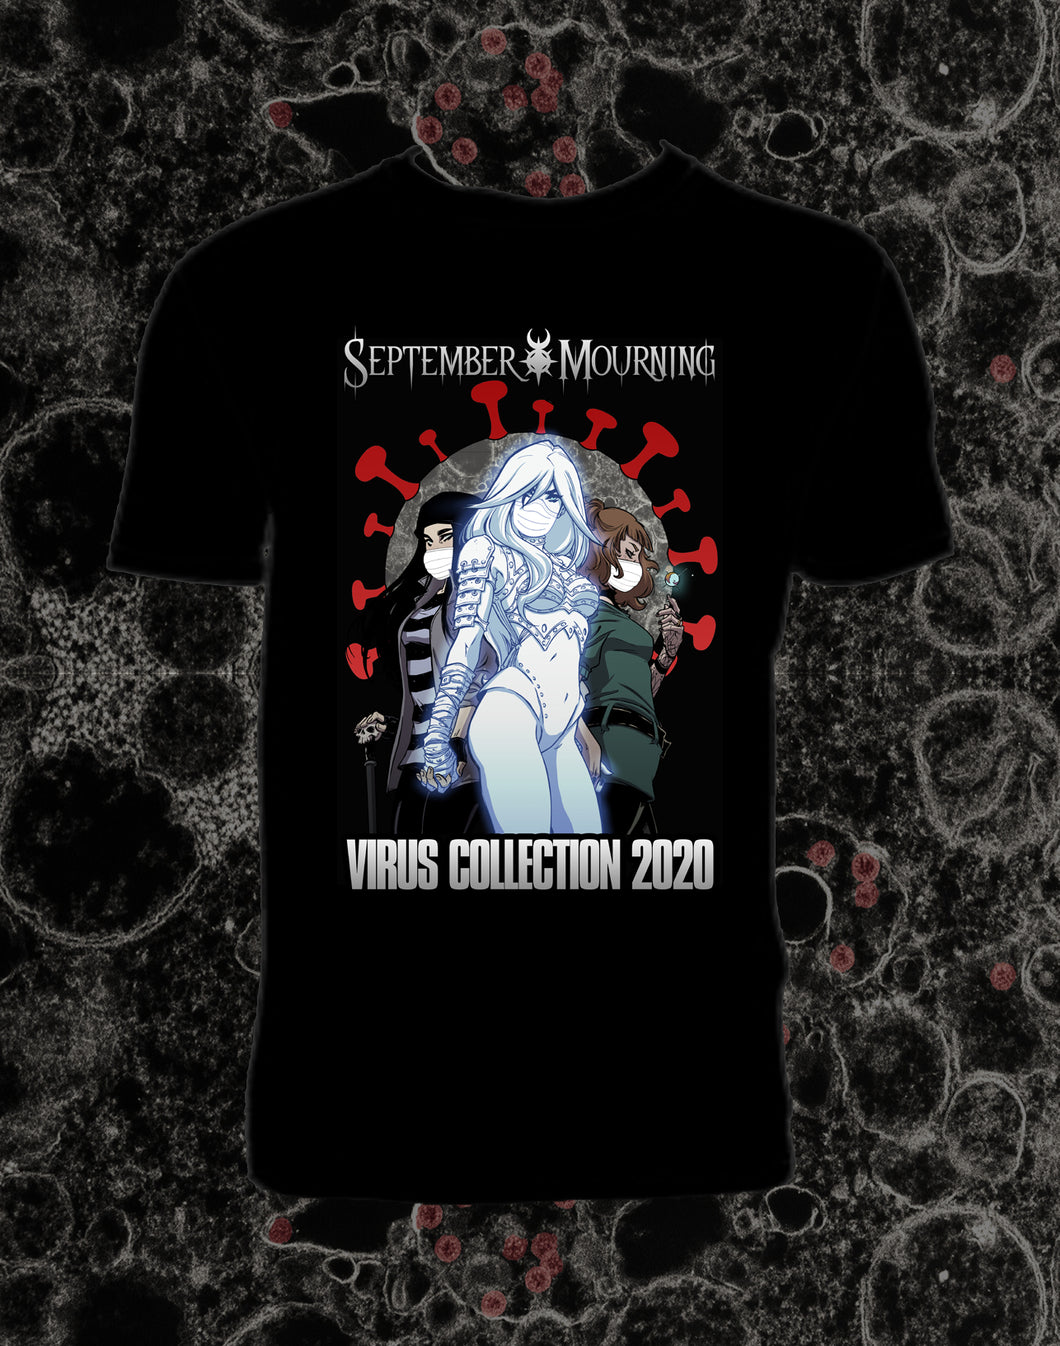 Virus Collection 2020